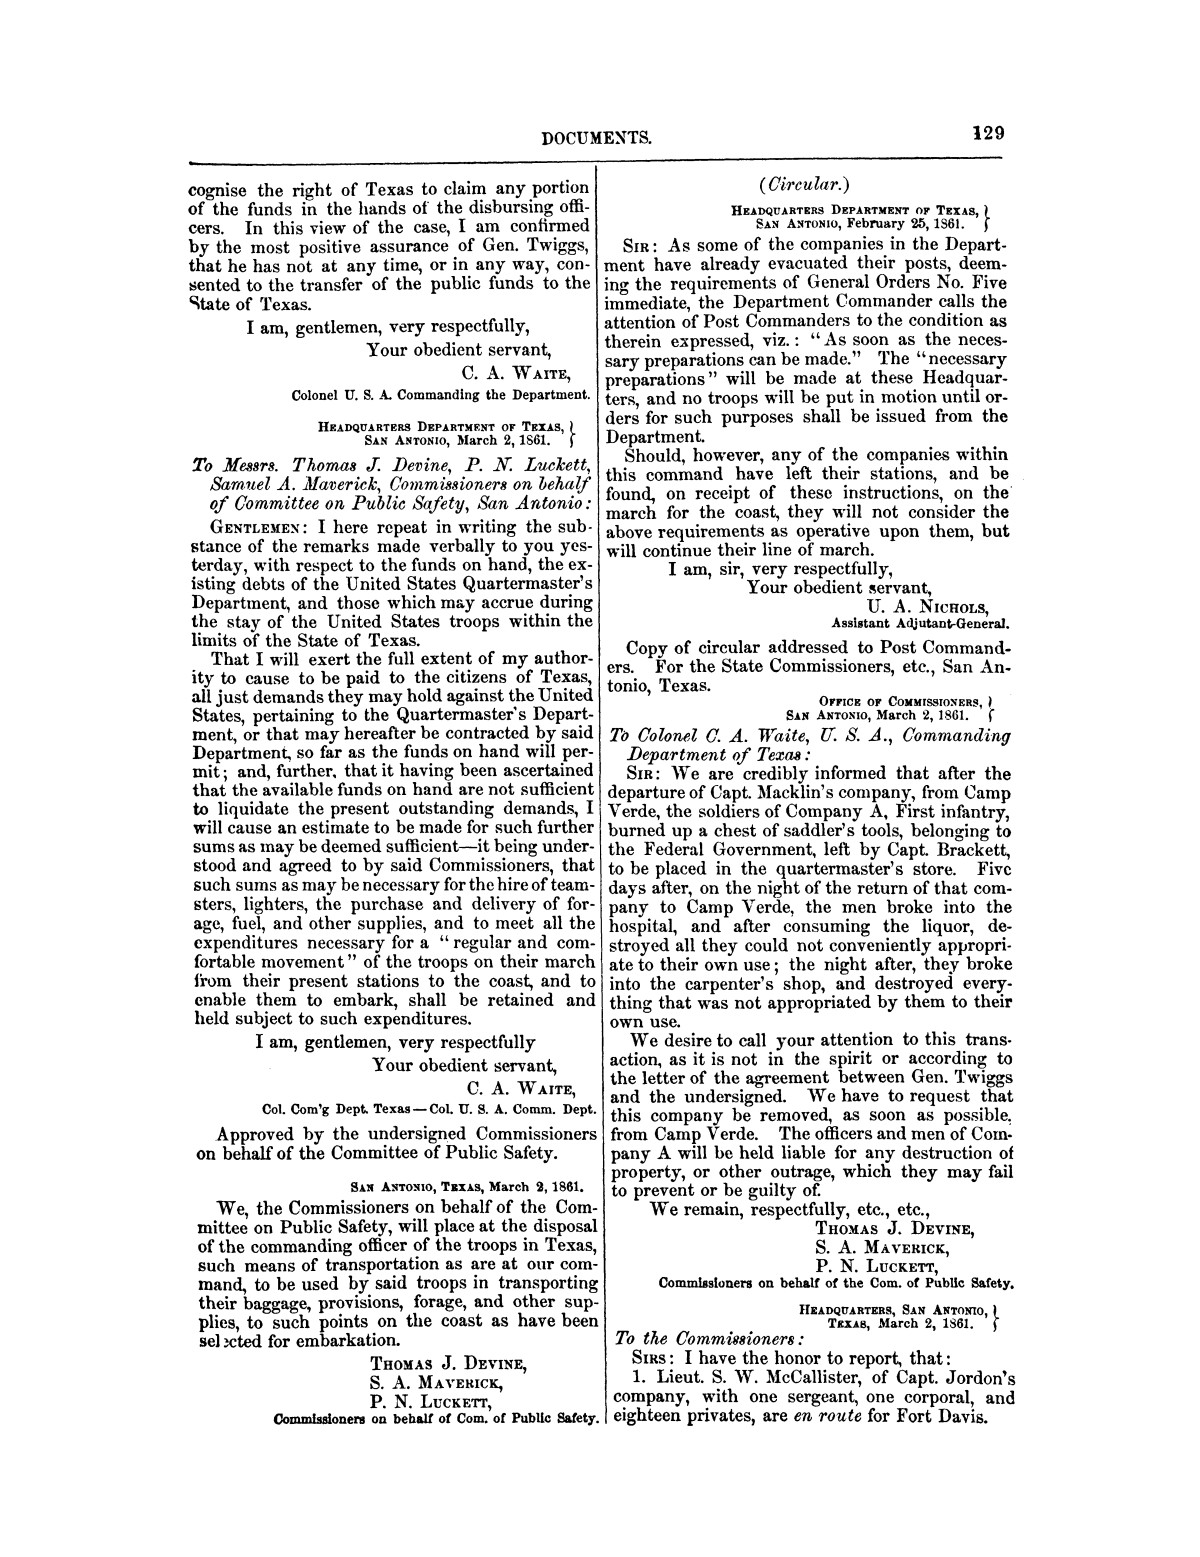 The treachery in Texas, the secession of Texas, and the arrest of the United States officers and soldiers serving in Texas. Read before the New-York Historical Society, June 25, 1861. By Major J. T. Sprague, U. S. A.                                                                                                      [Sequence #]: 23 of 36